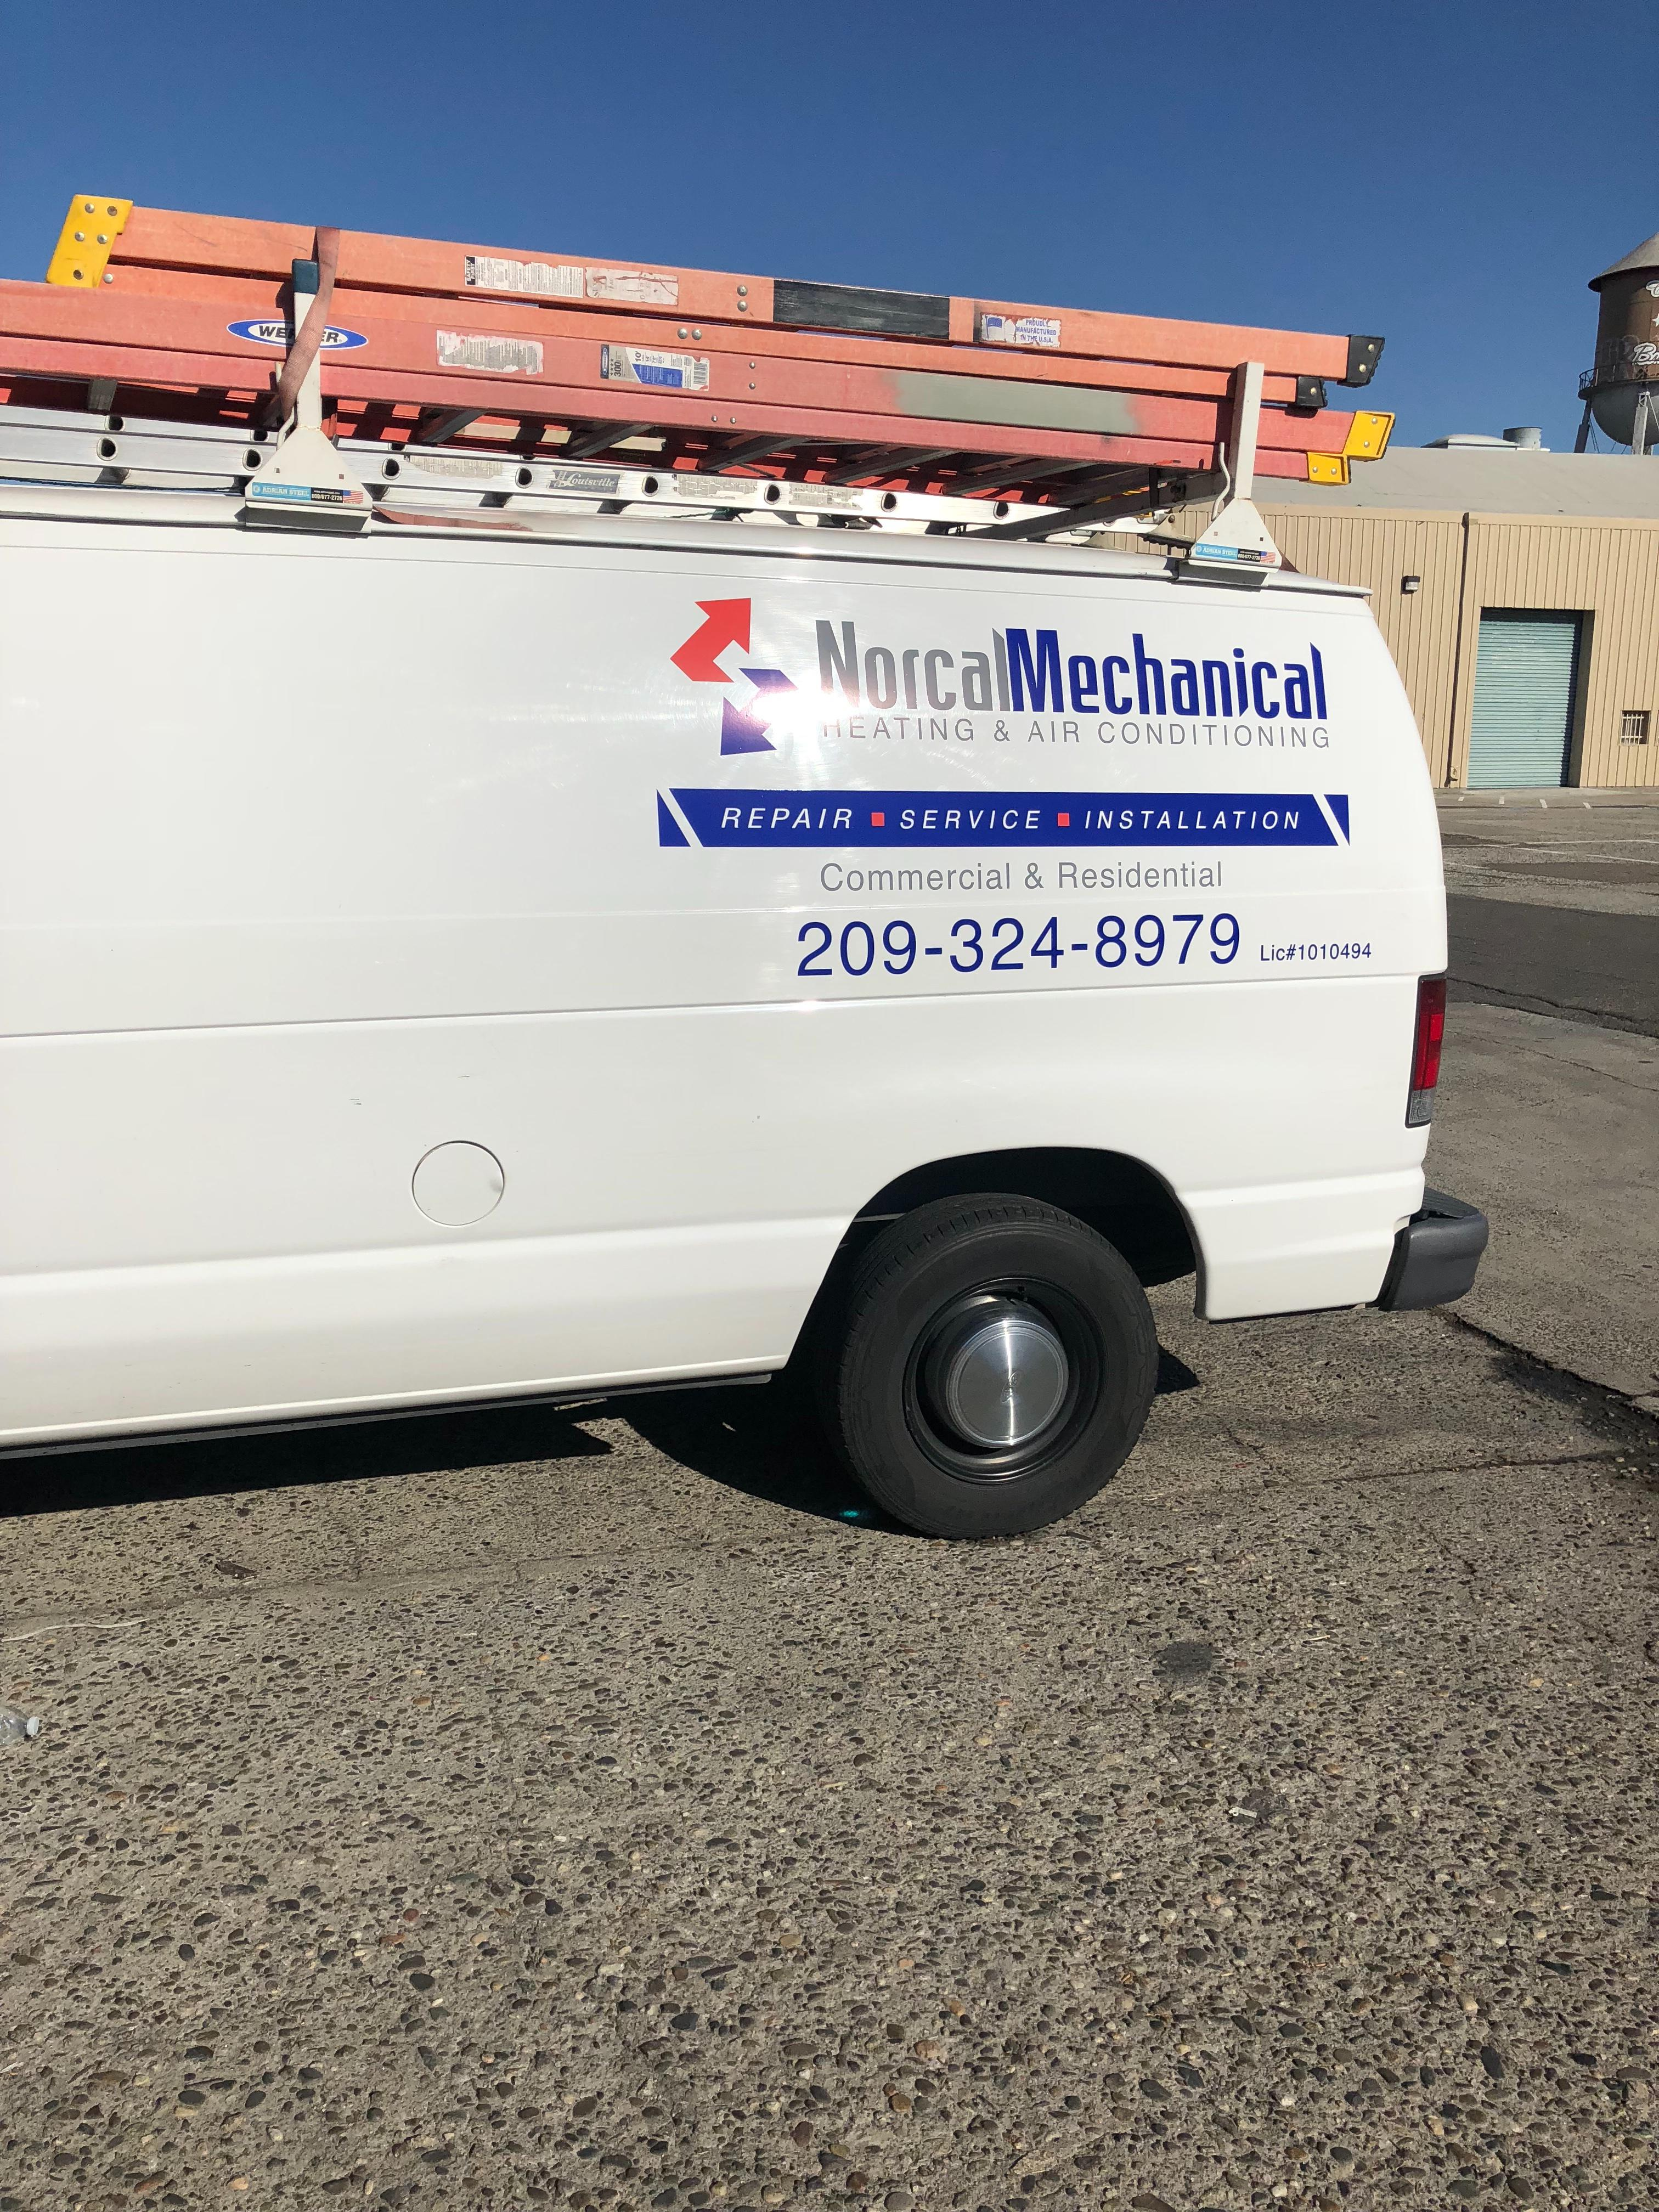 Norcal Mechanical Heating and Cooling